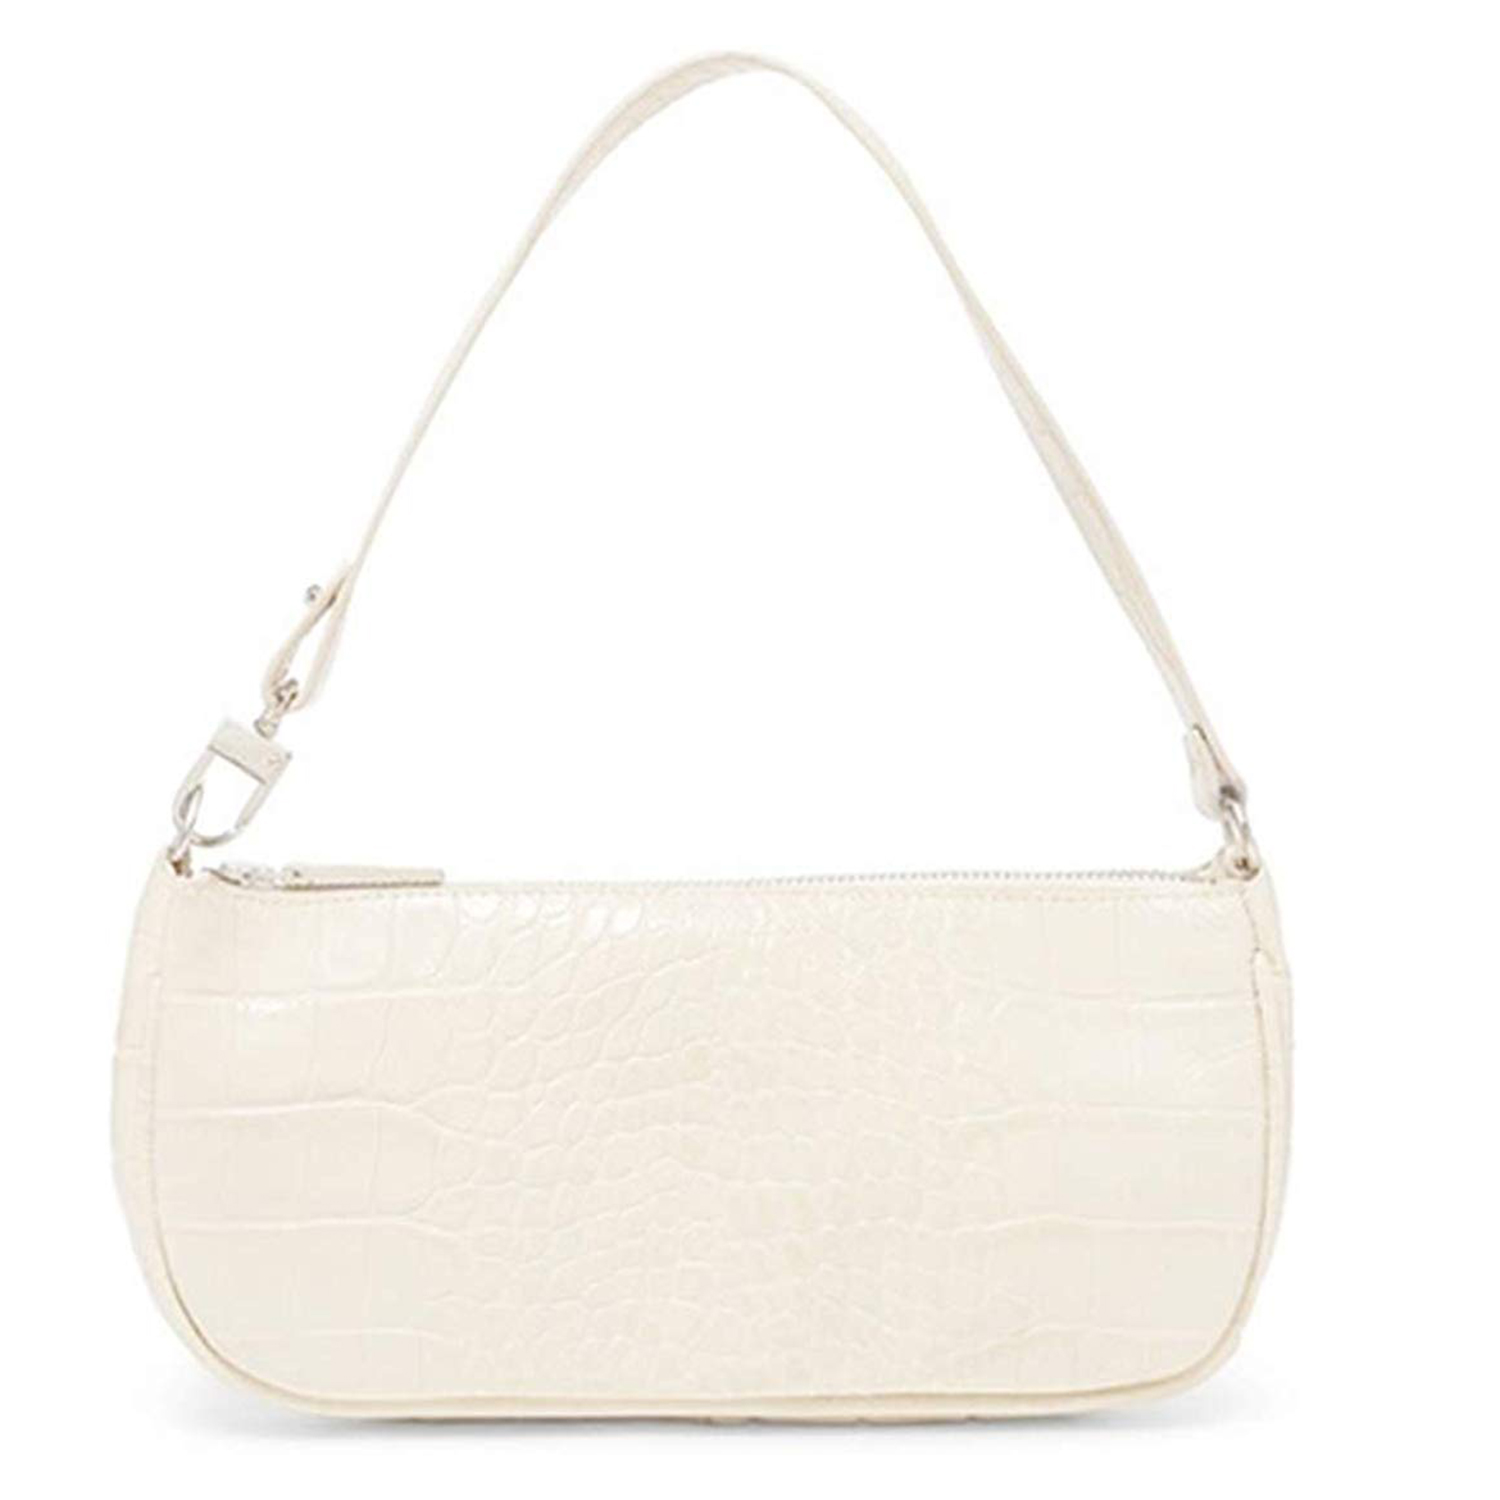 Barabum Retro Classic Crocodile Pattern Clutch Off-White